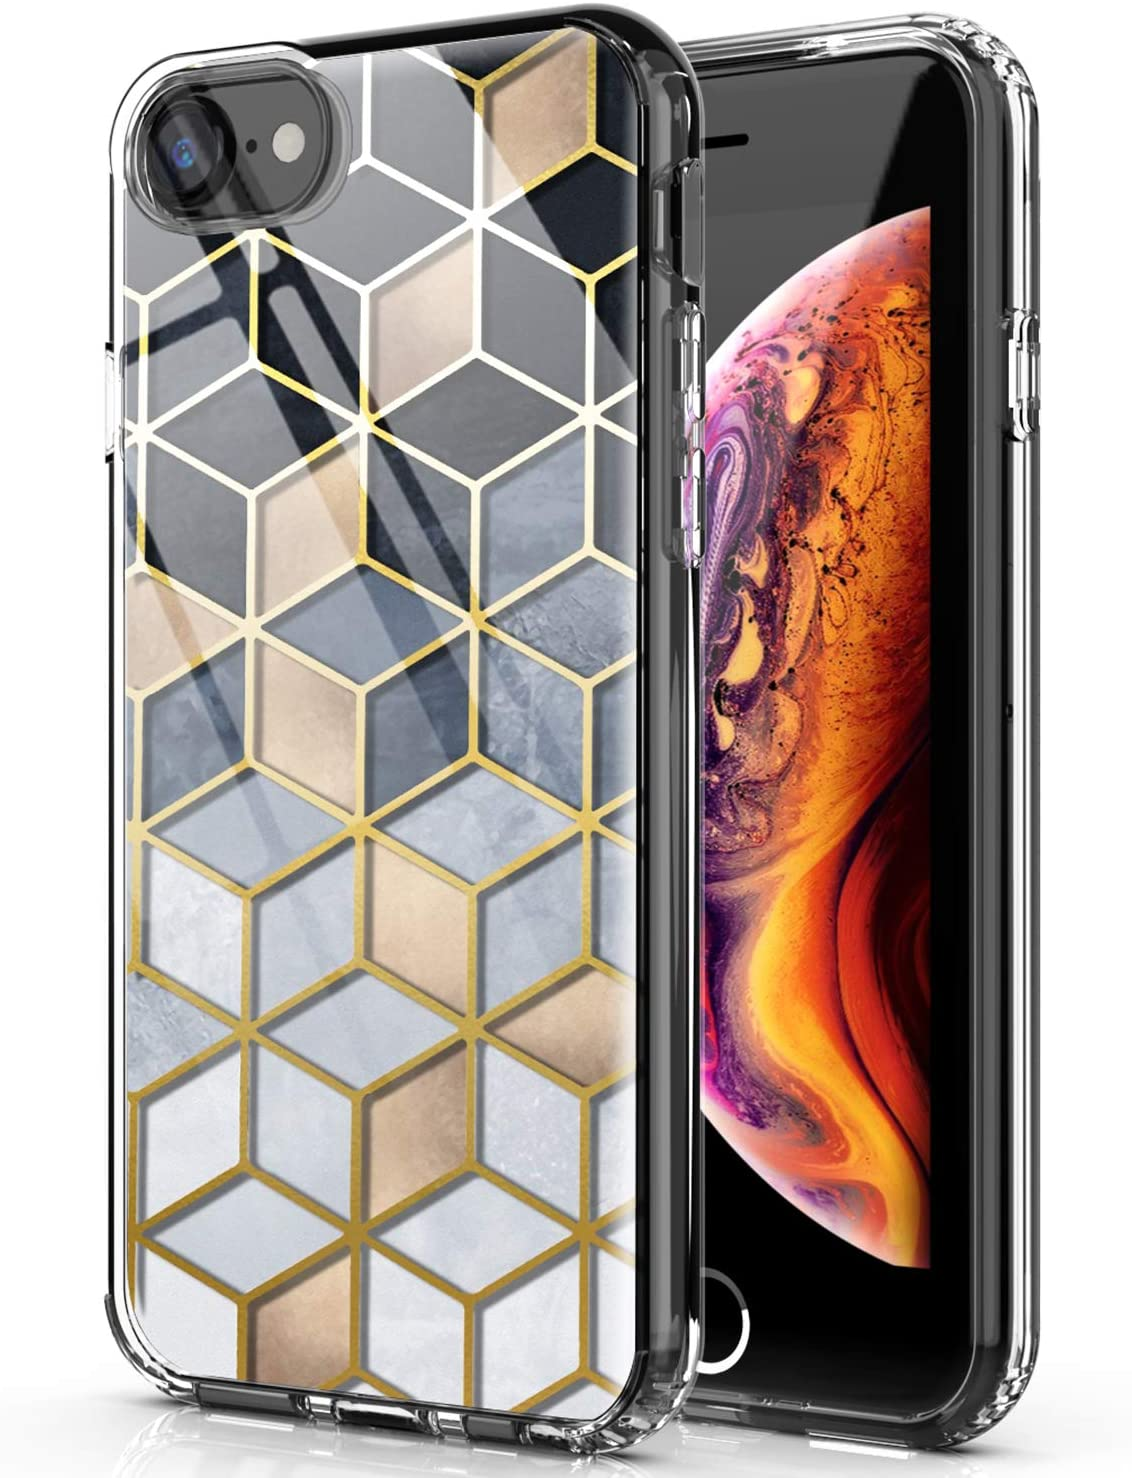 PBRO Case for iPhone SE 2020 Case,iPhone 6/6s Case,iPhone 7/8 Case Shiny Marble Case Slim Soft TPU Rubber Bumper Silicone Protective Phone Case Cover for Apple iPhone SE 2020/6/6S/7/8-Gold